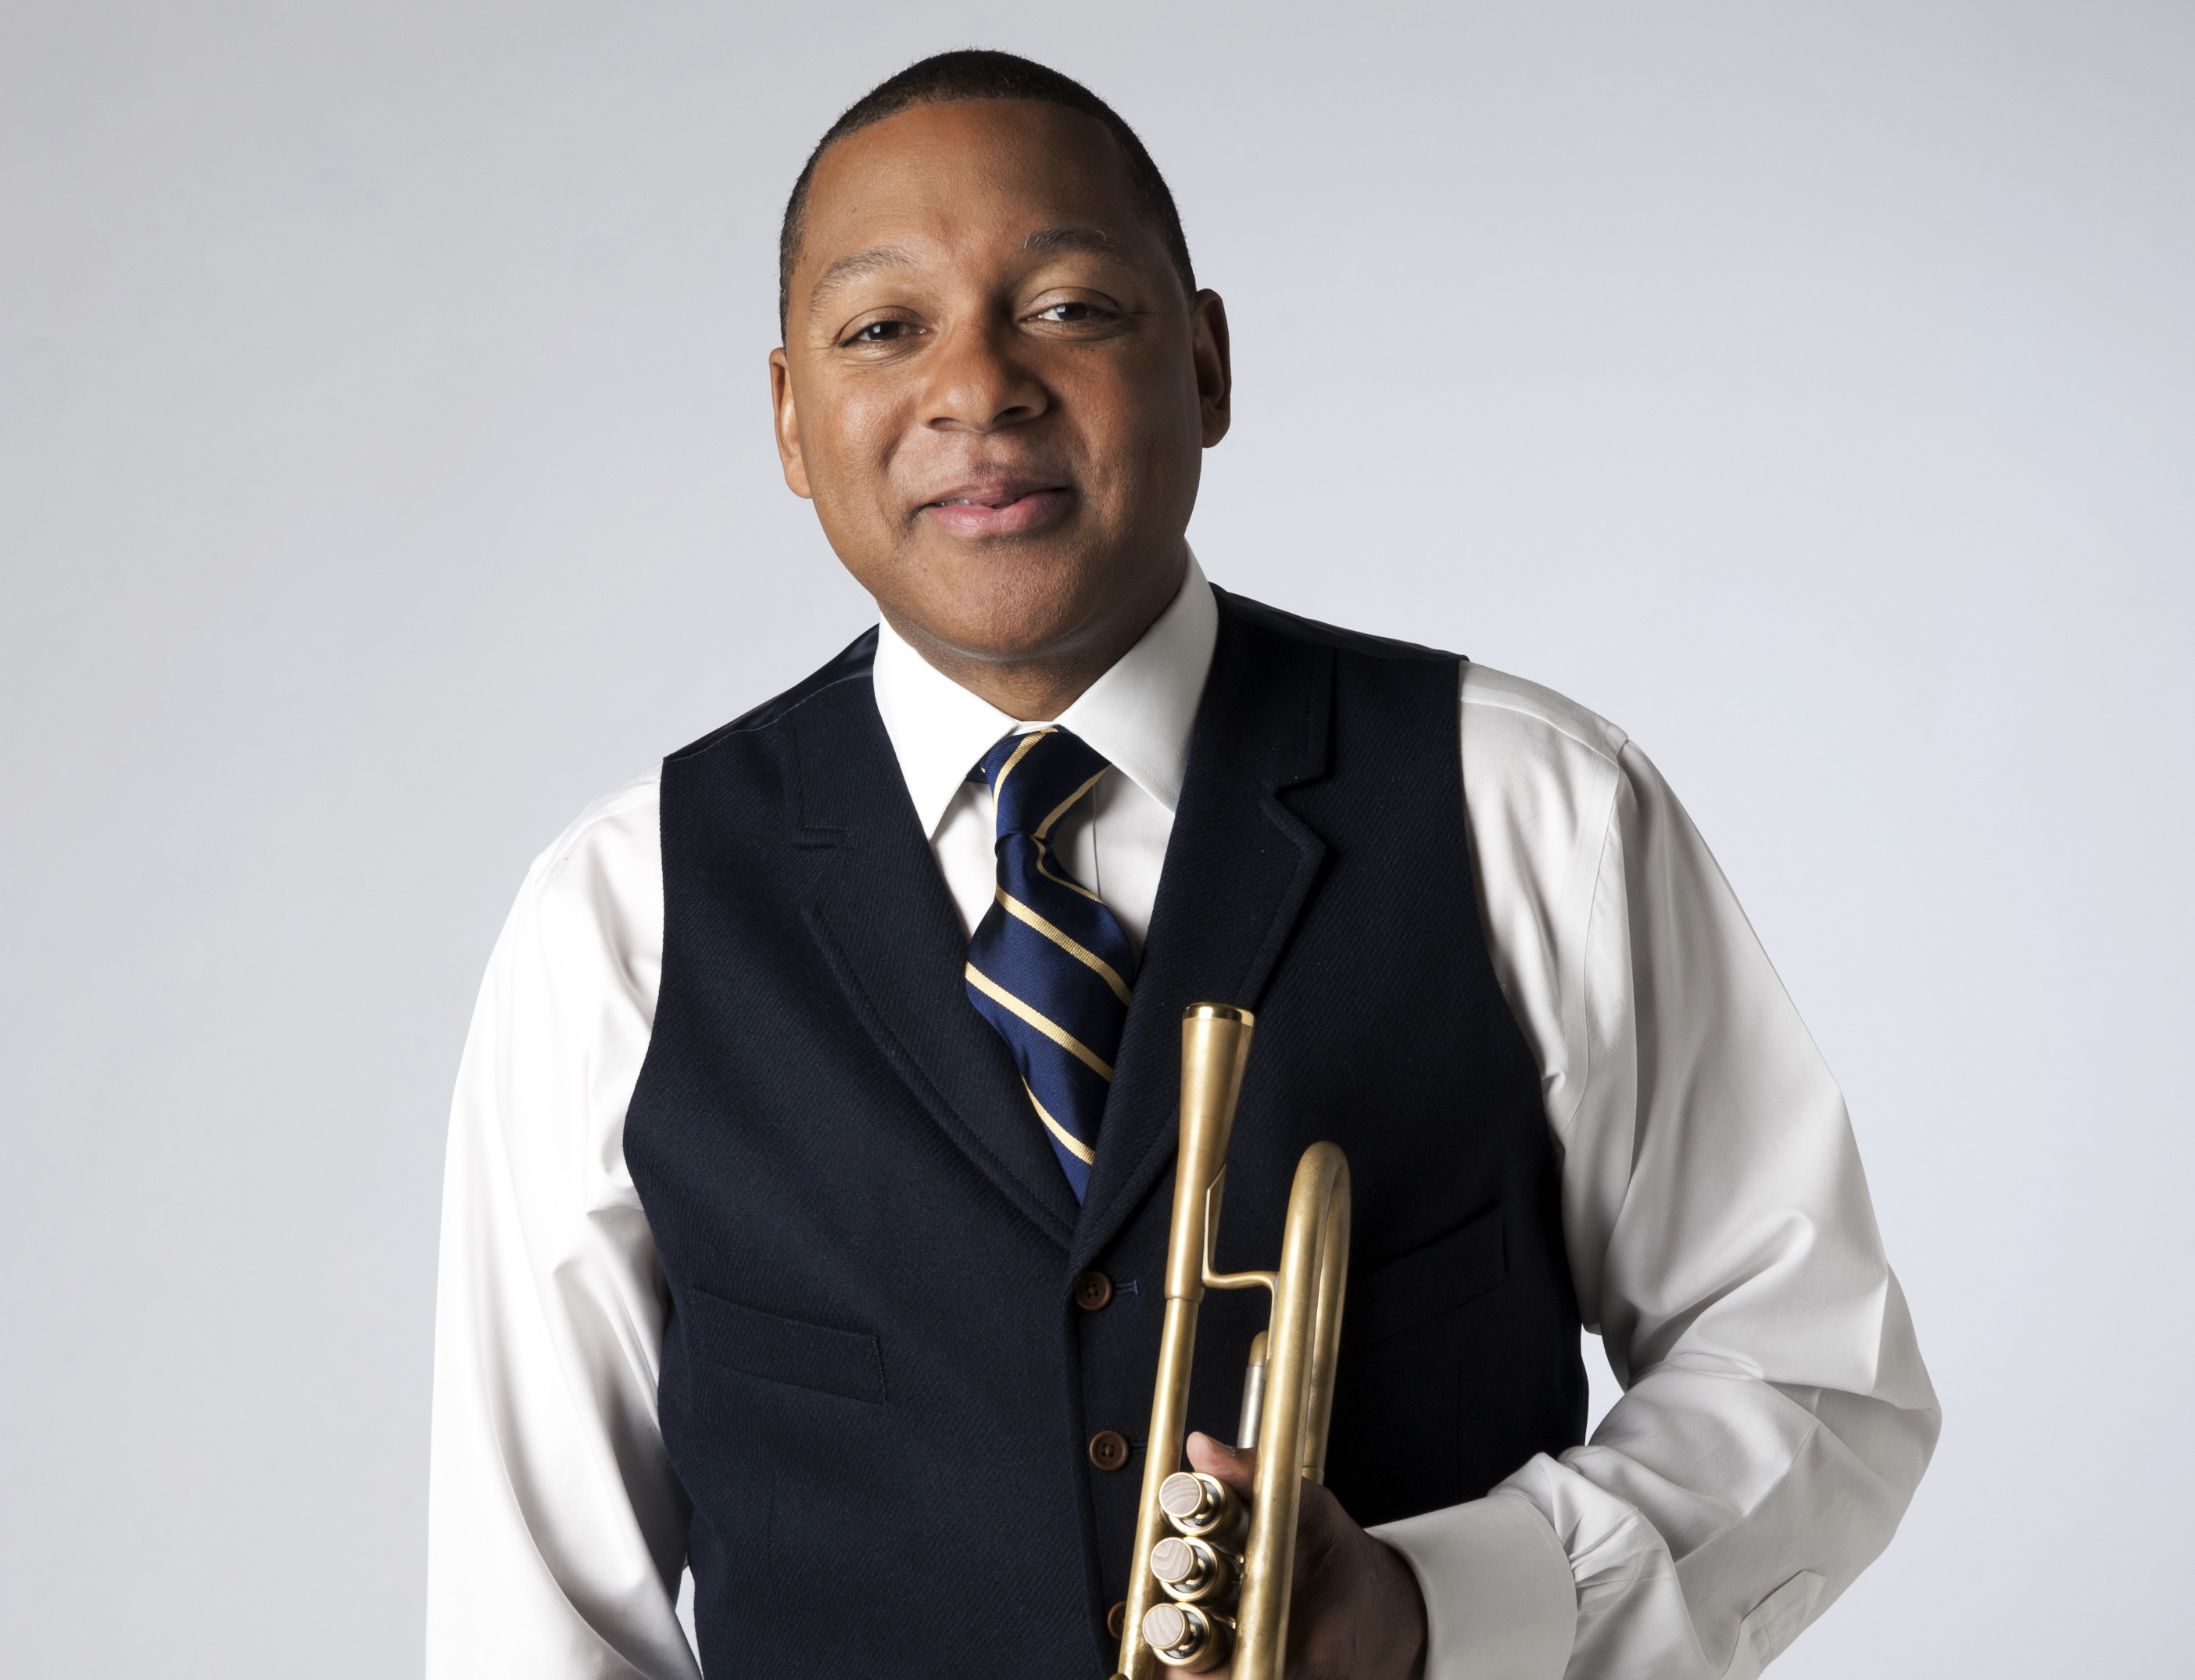 Buy Home Plans Jazz At Lincoln Center Orchestra With Wynton Marsalis